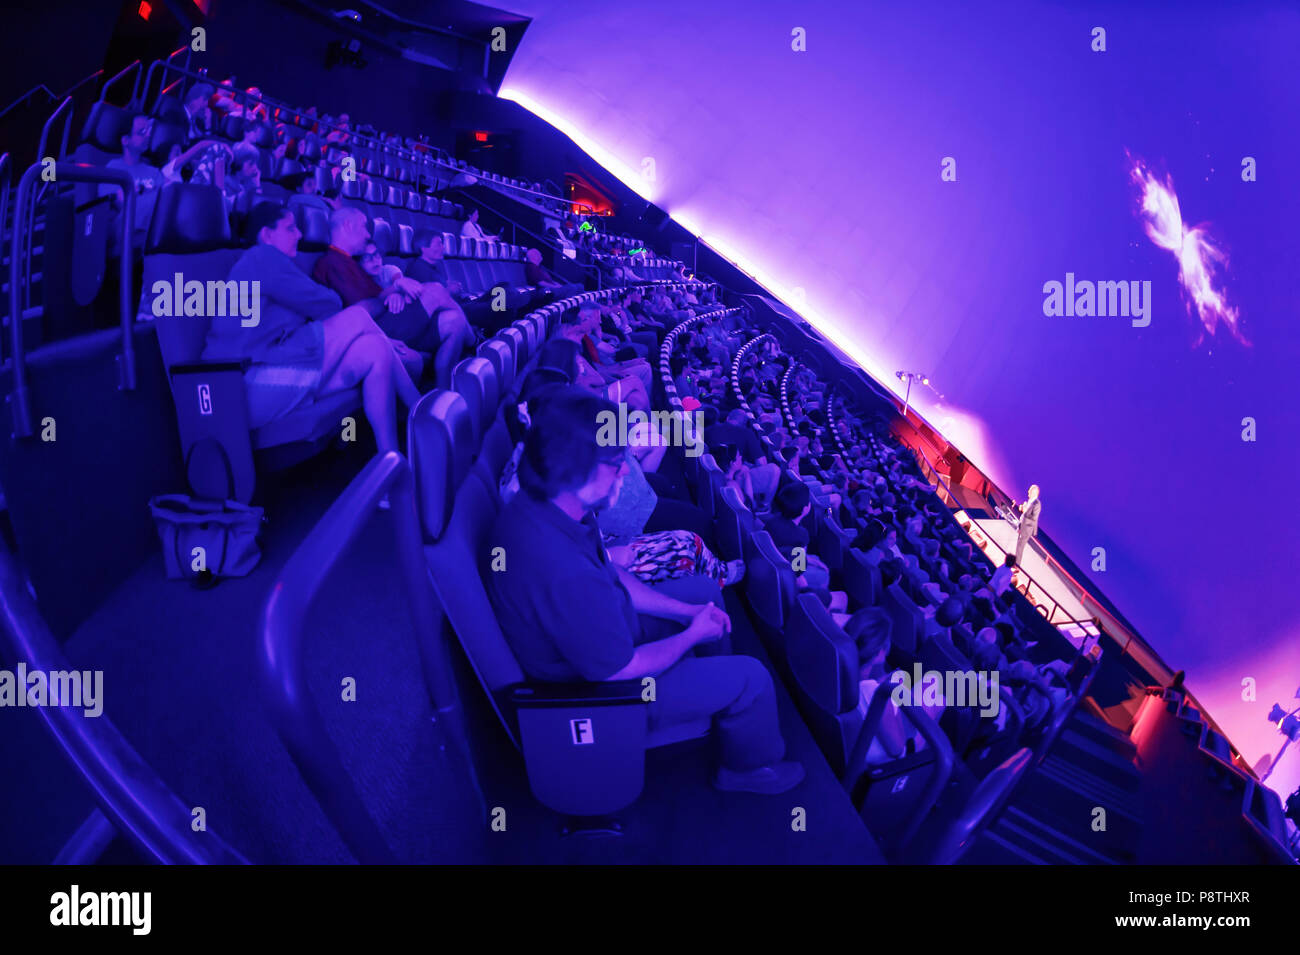 Garden City, New York, USA. June 21, 2018. NASA space shuttle astronaut MIKE MASSIMINO, a Long Island native, is on stage giving free lecture to audience in the JetBlue Sky Theater Planetarium at the Cradle of Aviation Museum. Stock Photo